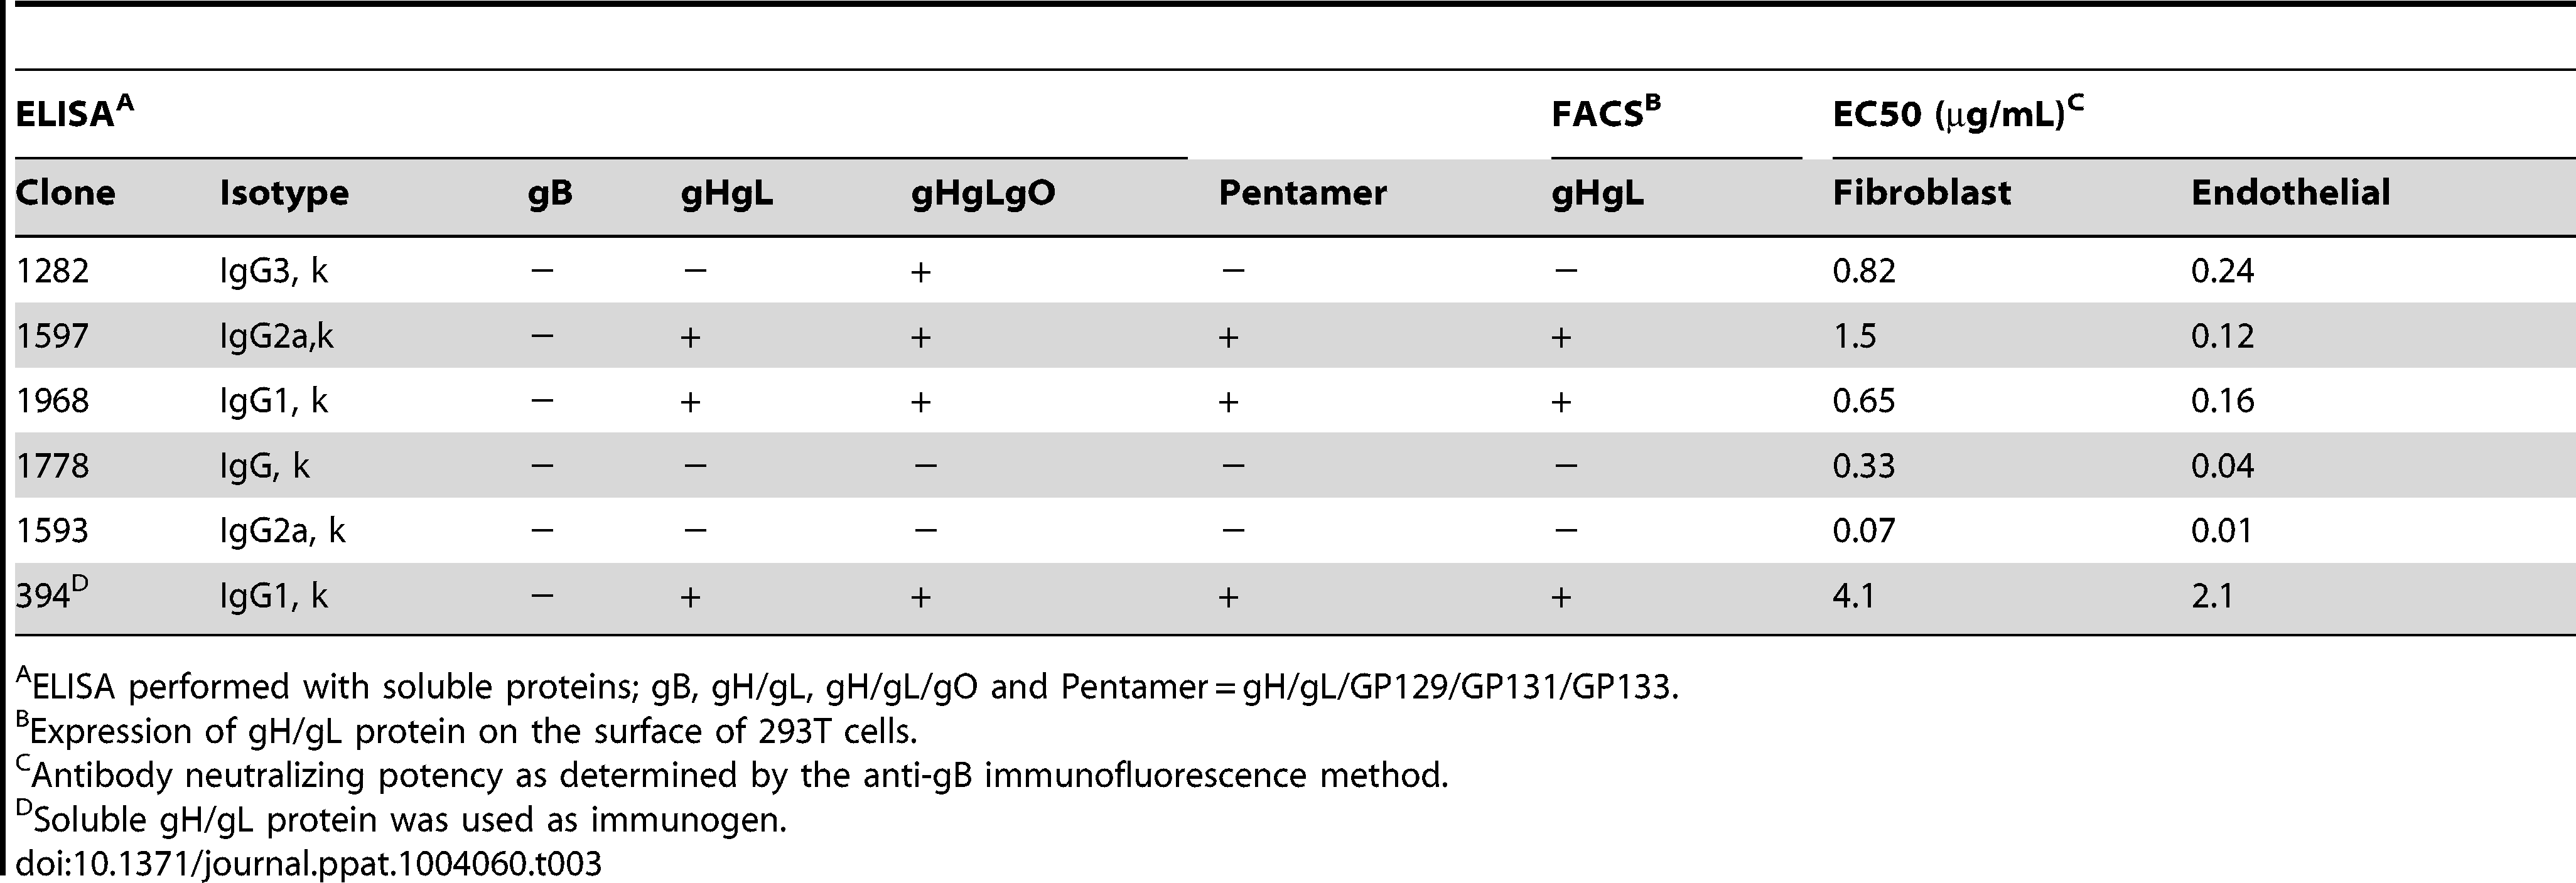 Characterization of mouse monoclonal antibodies against GPCMV.